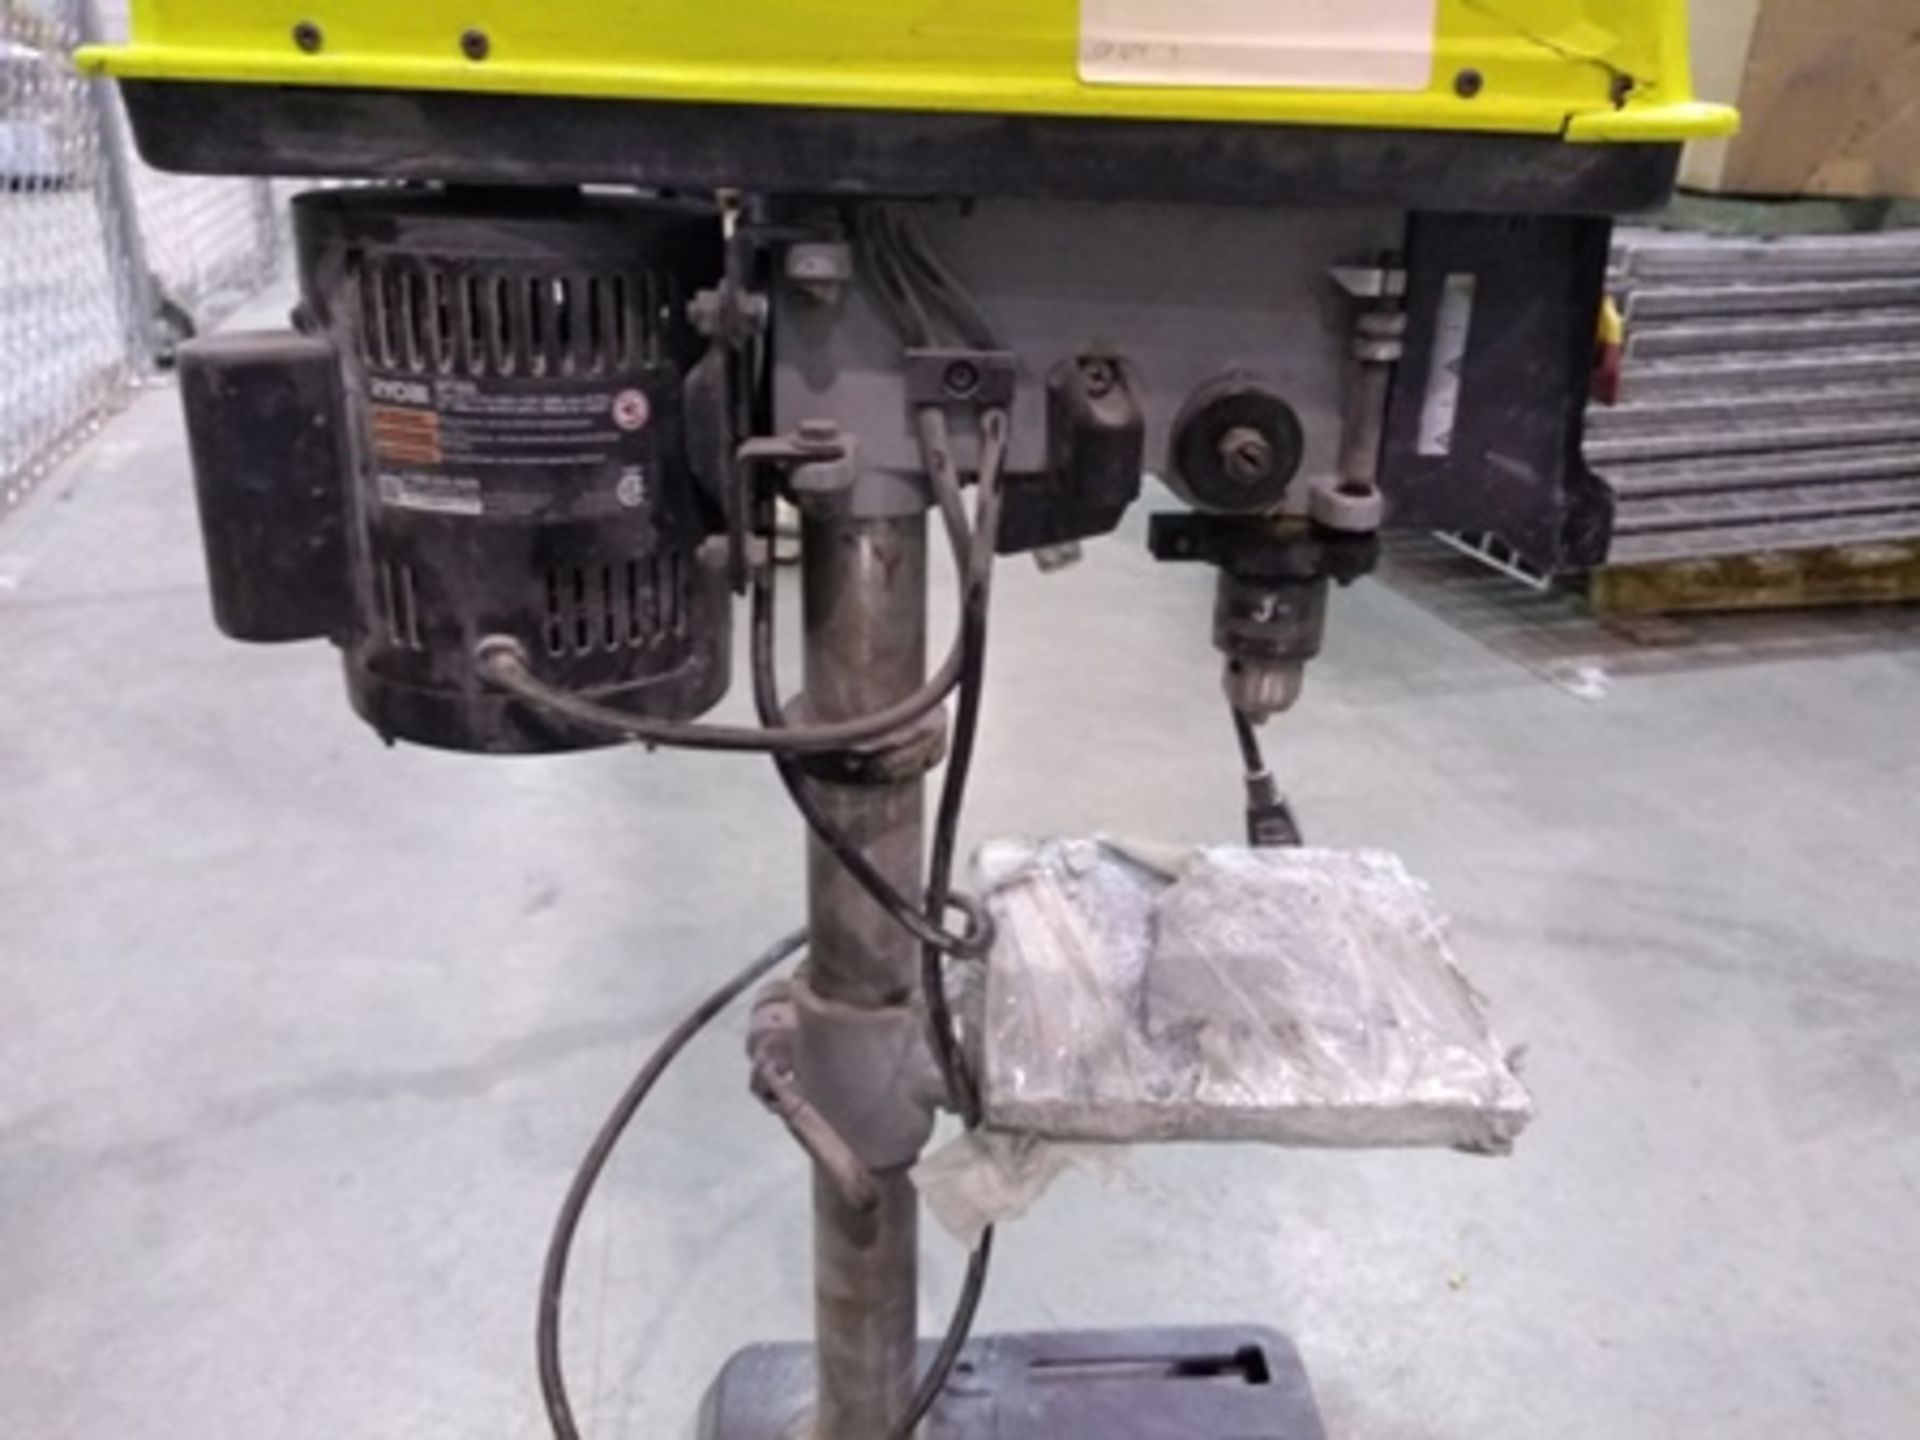 Lot 2 - Ryobi column drill (chuck and lasser alignment system included), 1/2 hp engine.